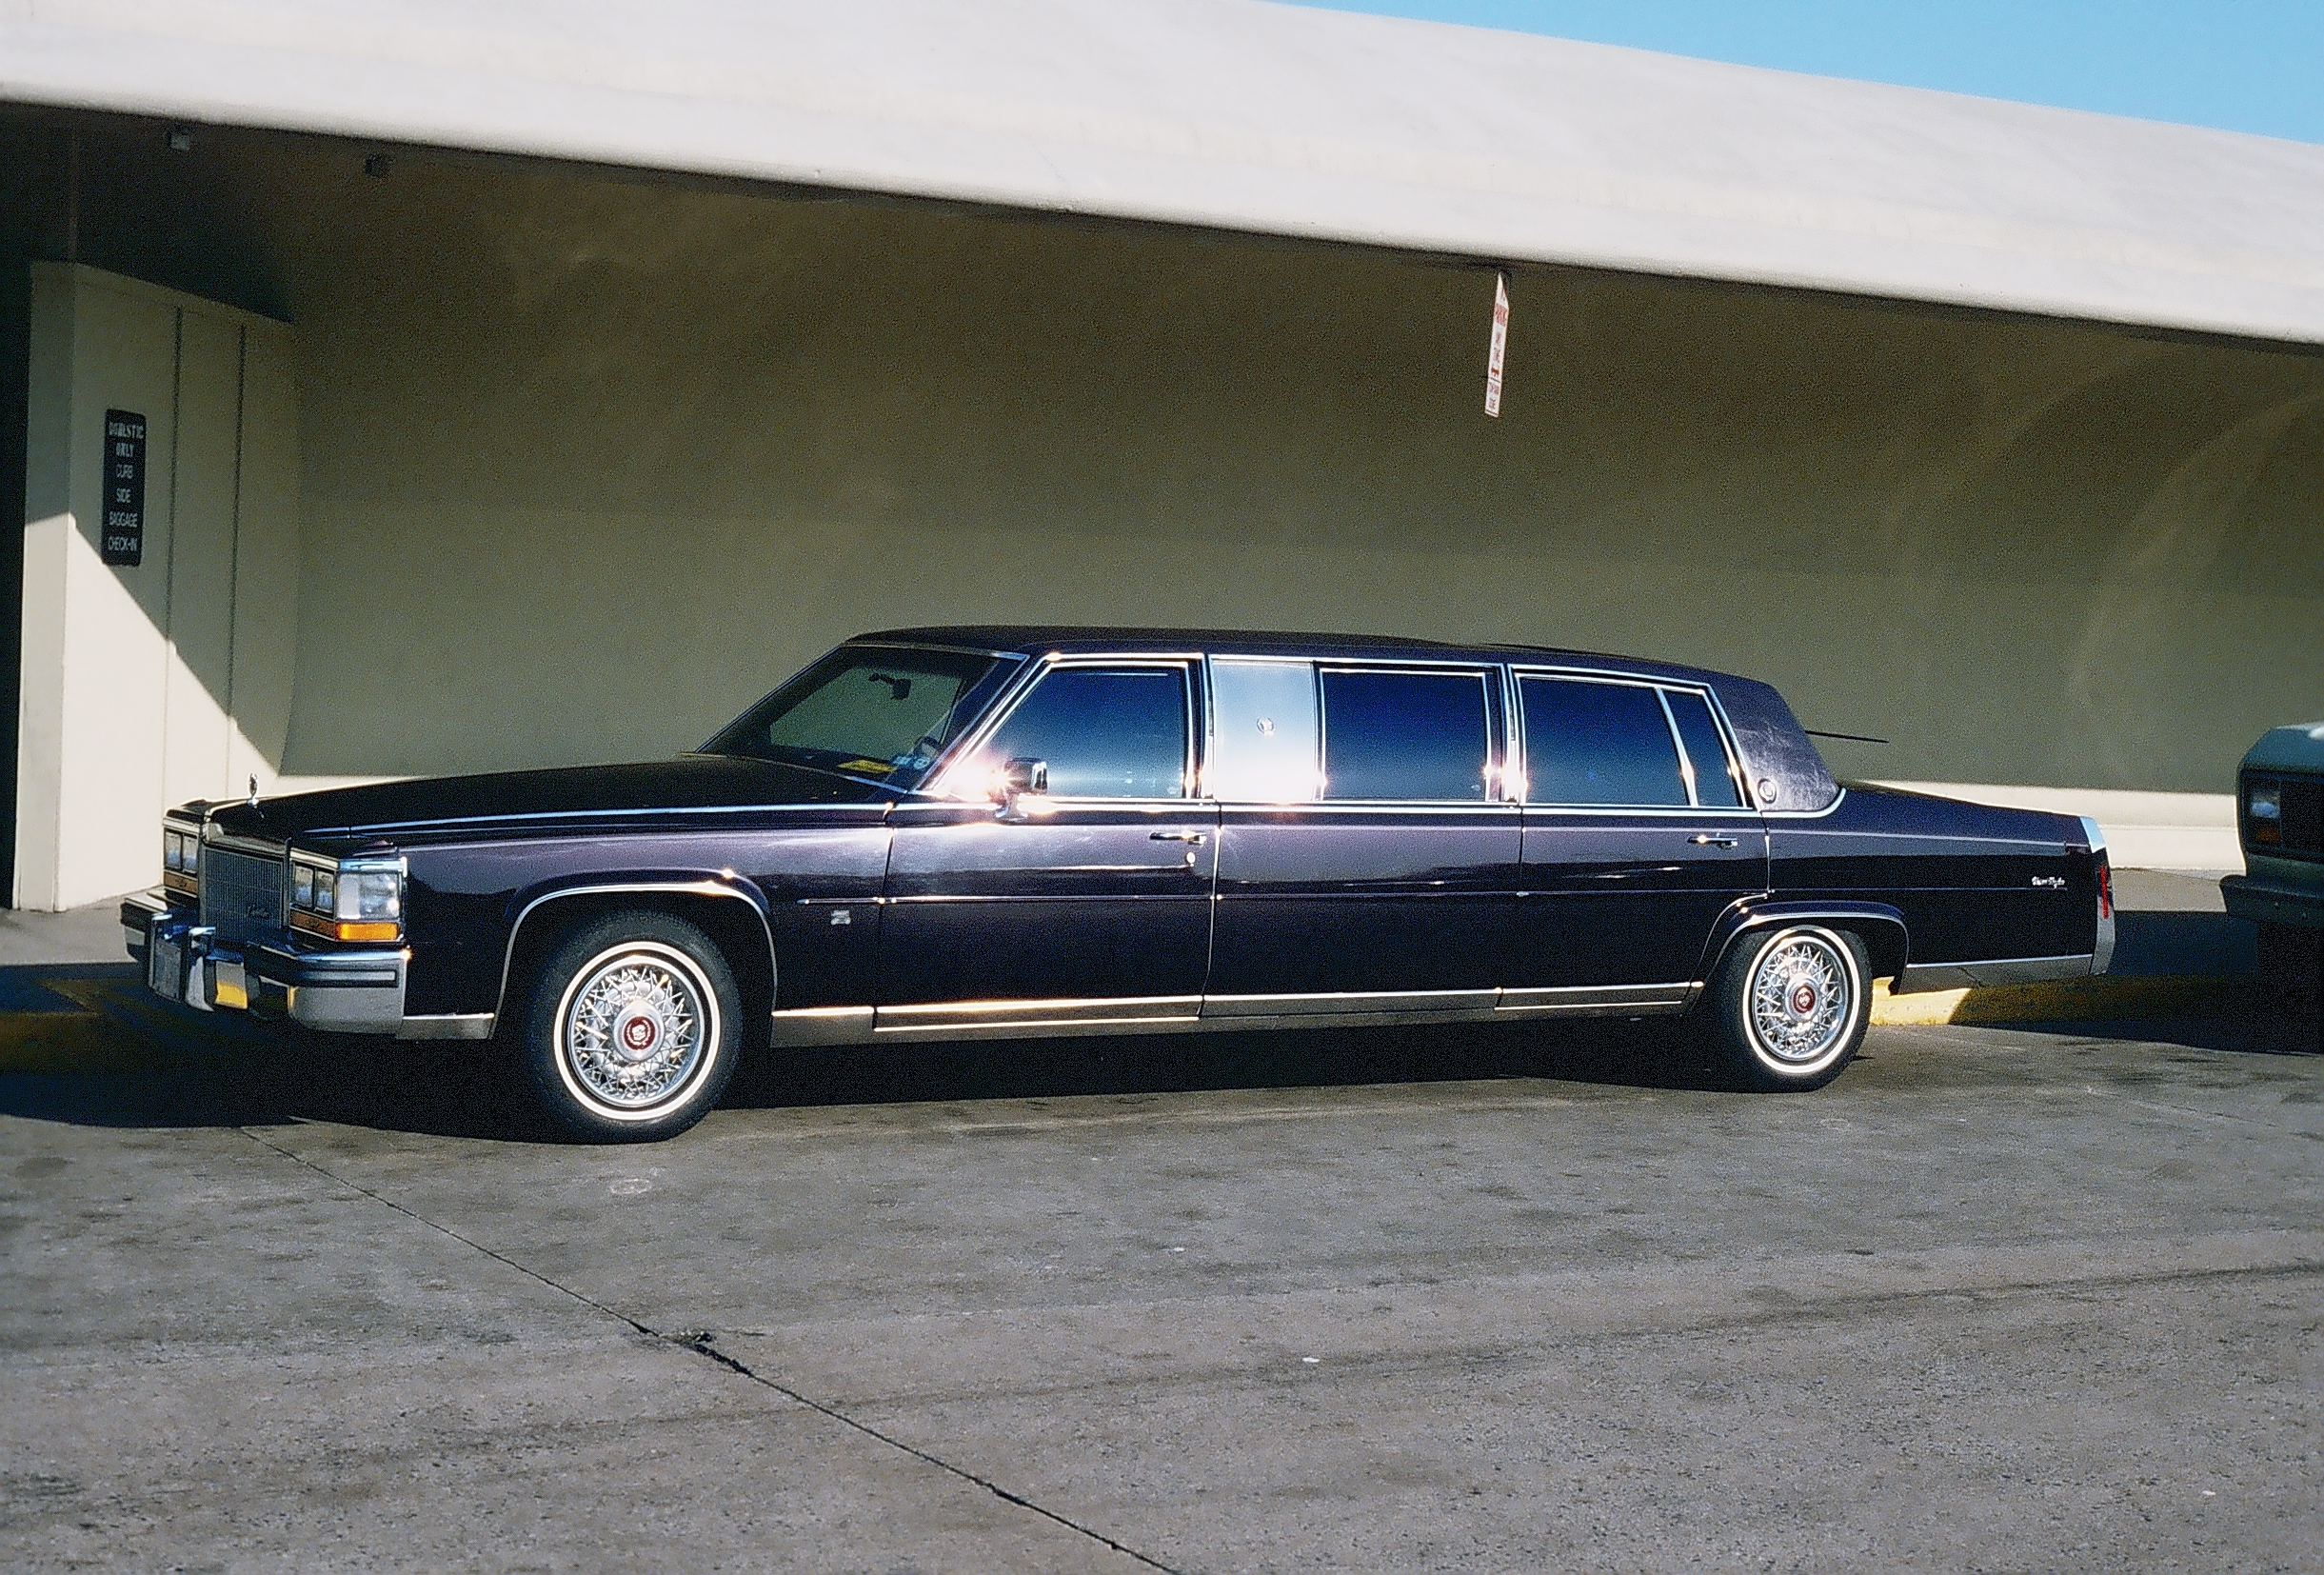 Airport Jfk Limousine Service File:limousine At Jfk Airport, Ny.jpg - Wikimedia Commons